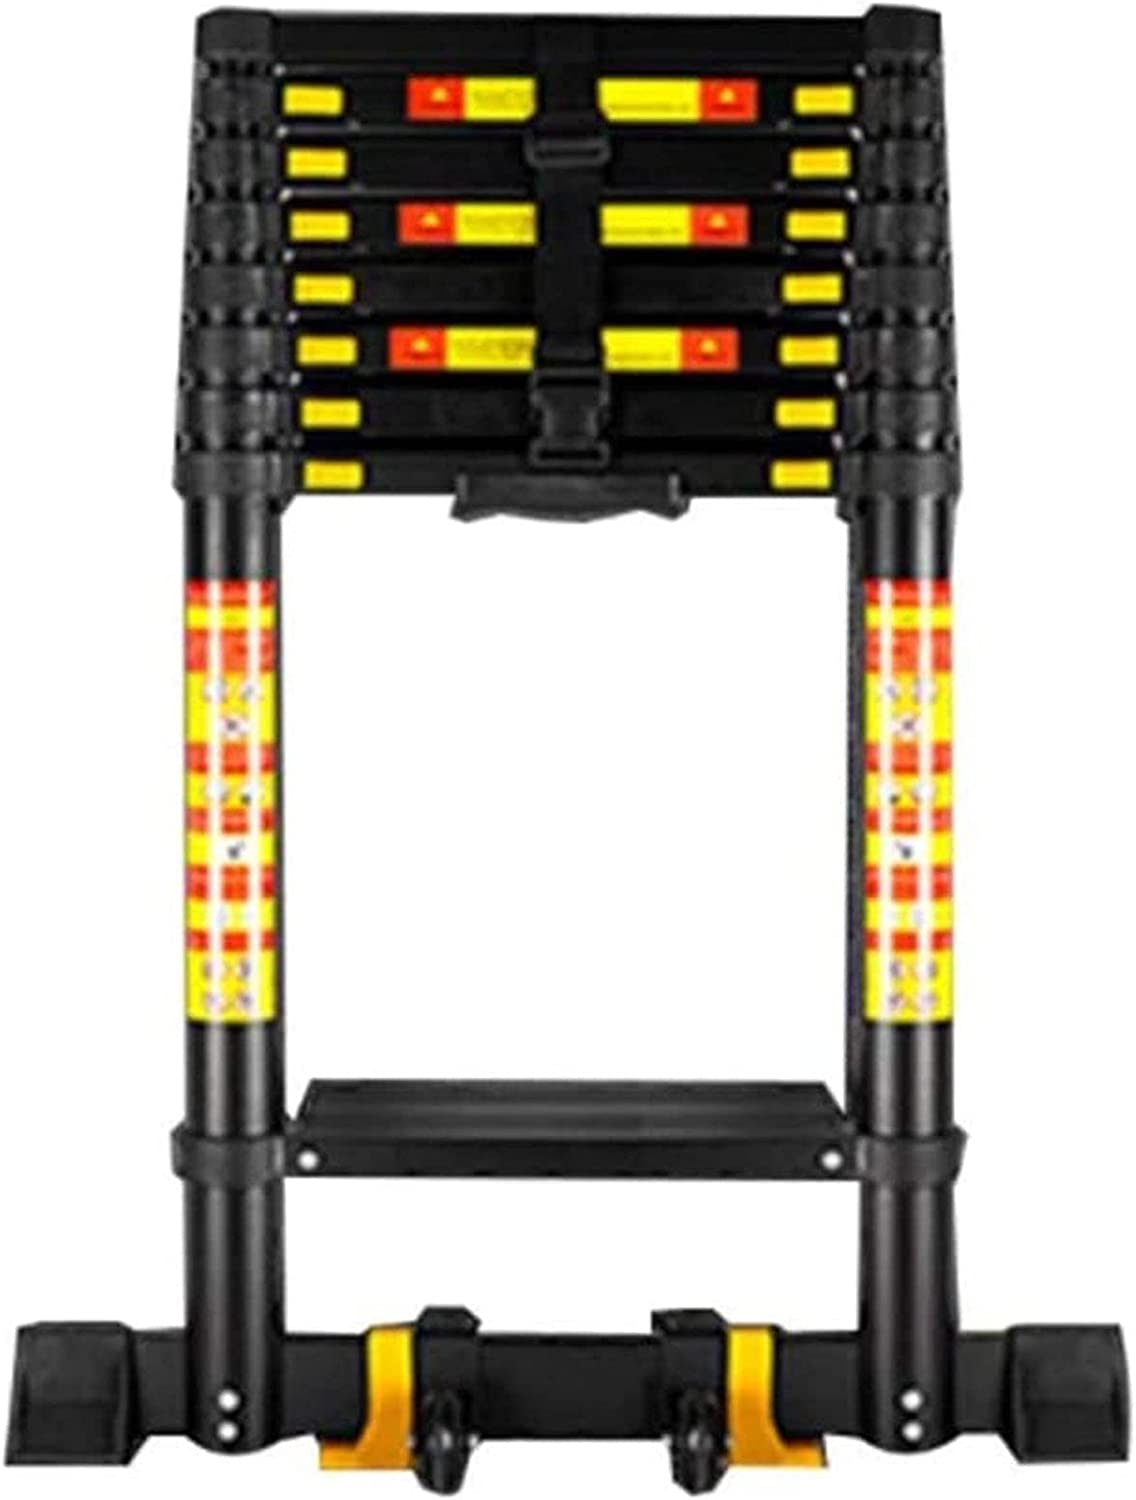 HBSC Telescopic Ladder Retractable Folding Exte Selling It is very popular Aluminum